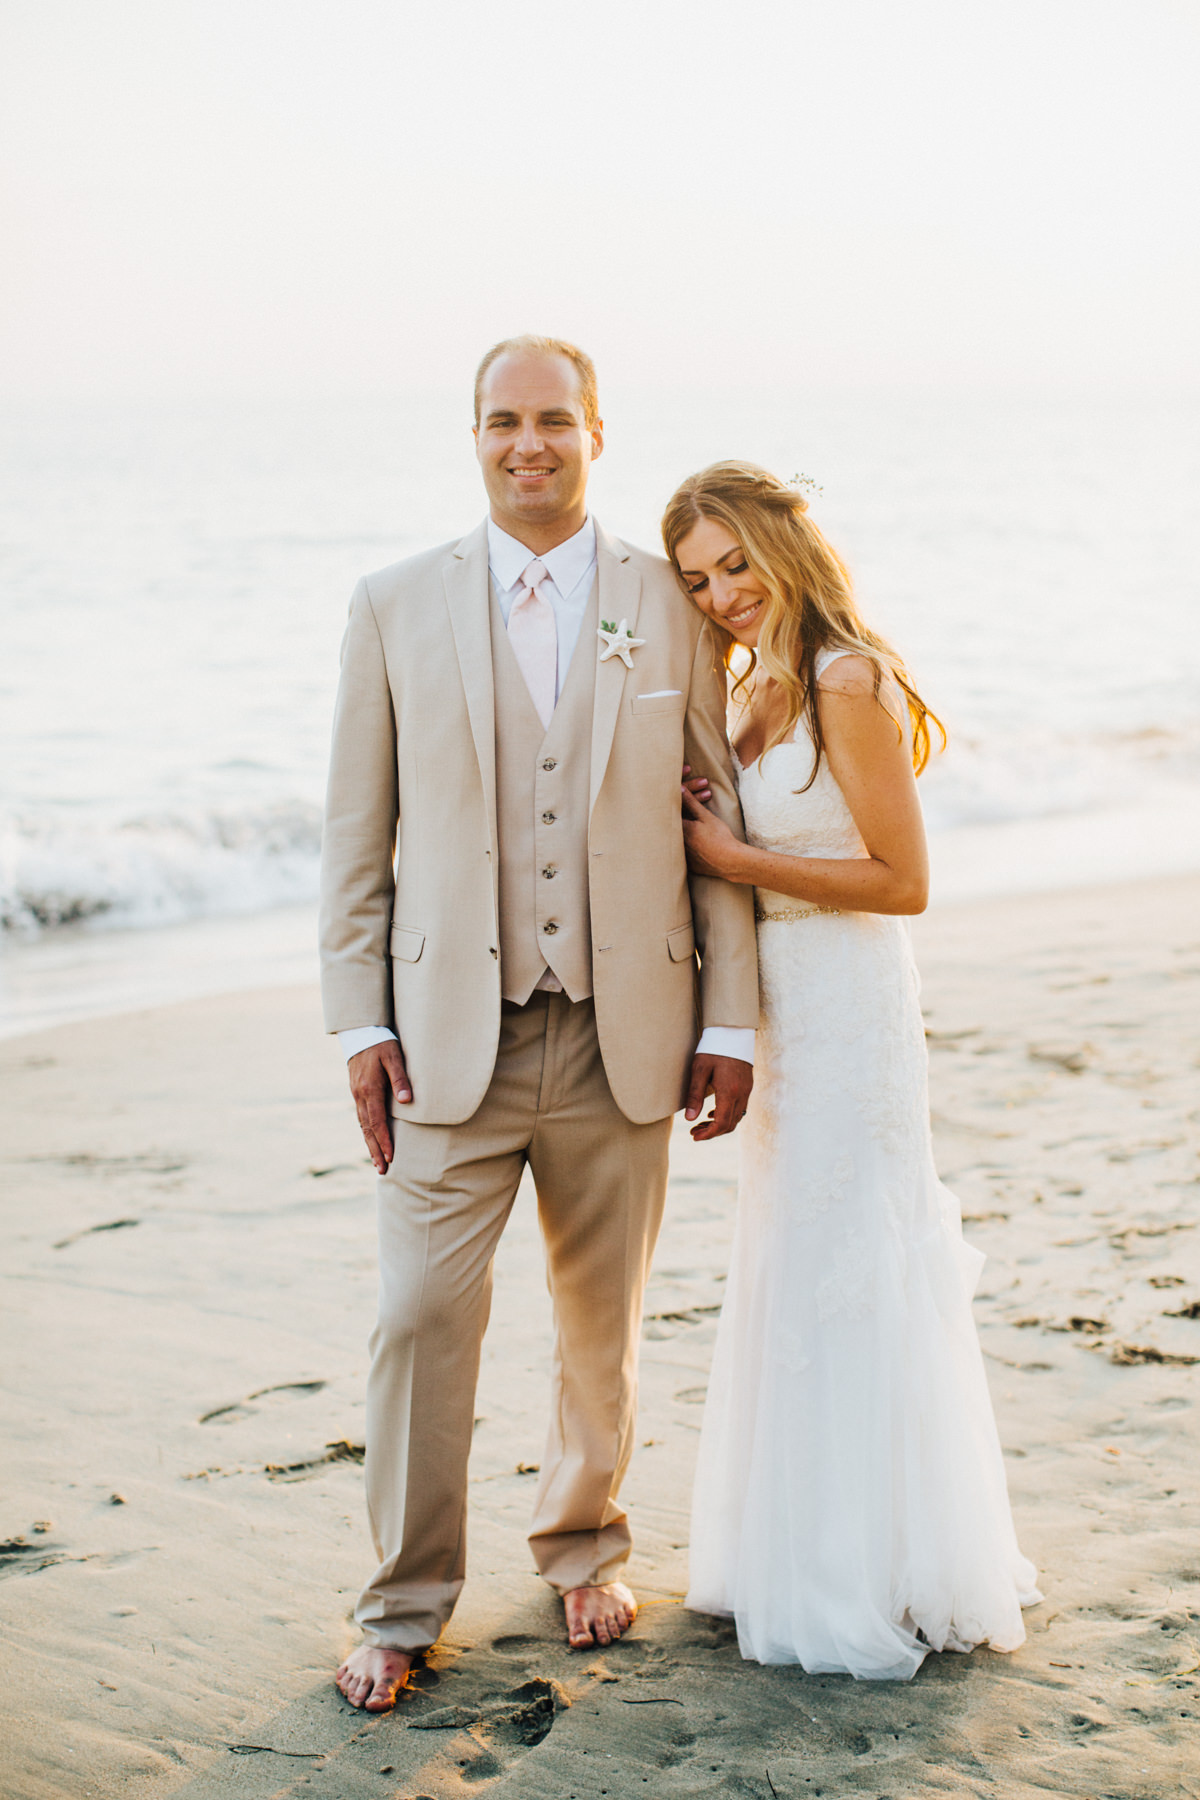 Hotel Laguna Beach Wedding Elopement San Diego OC Portrait + Wedding Photographer Martina Micko Photo45